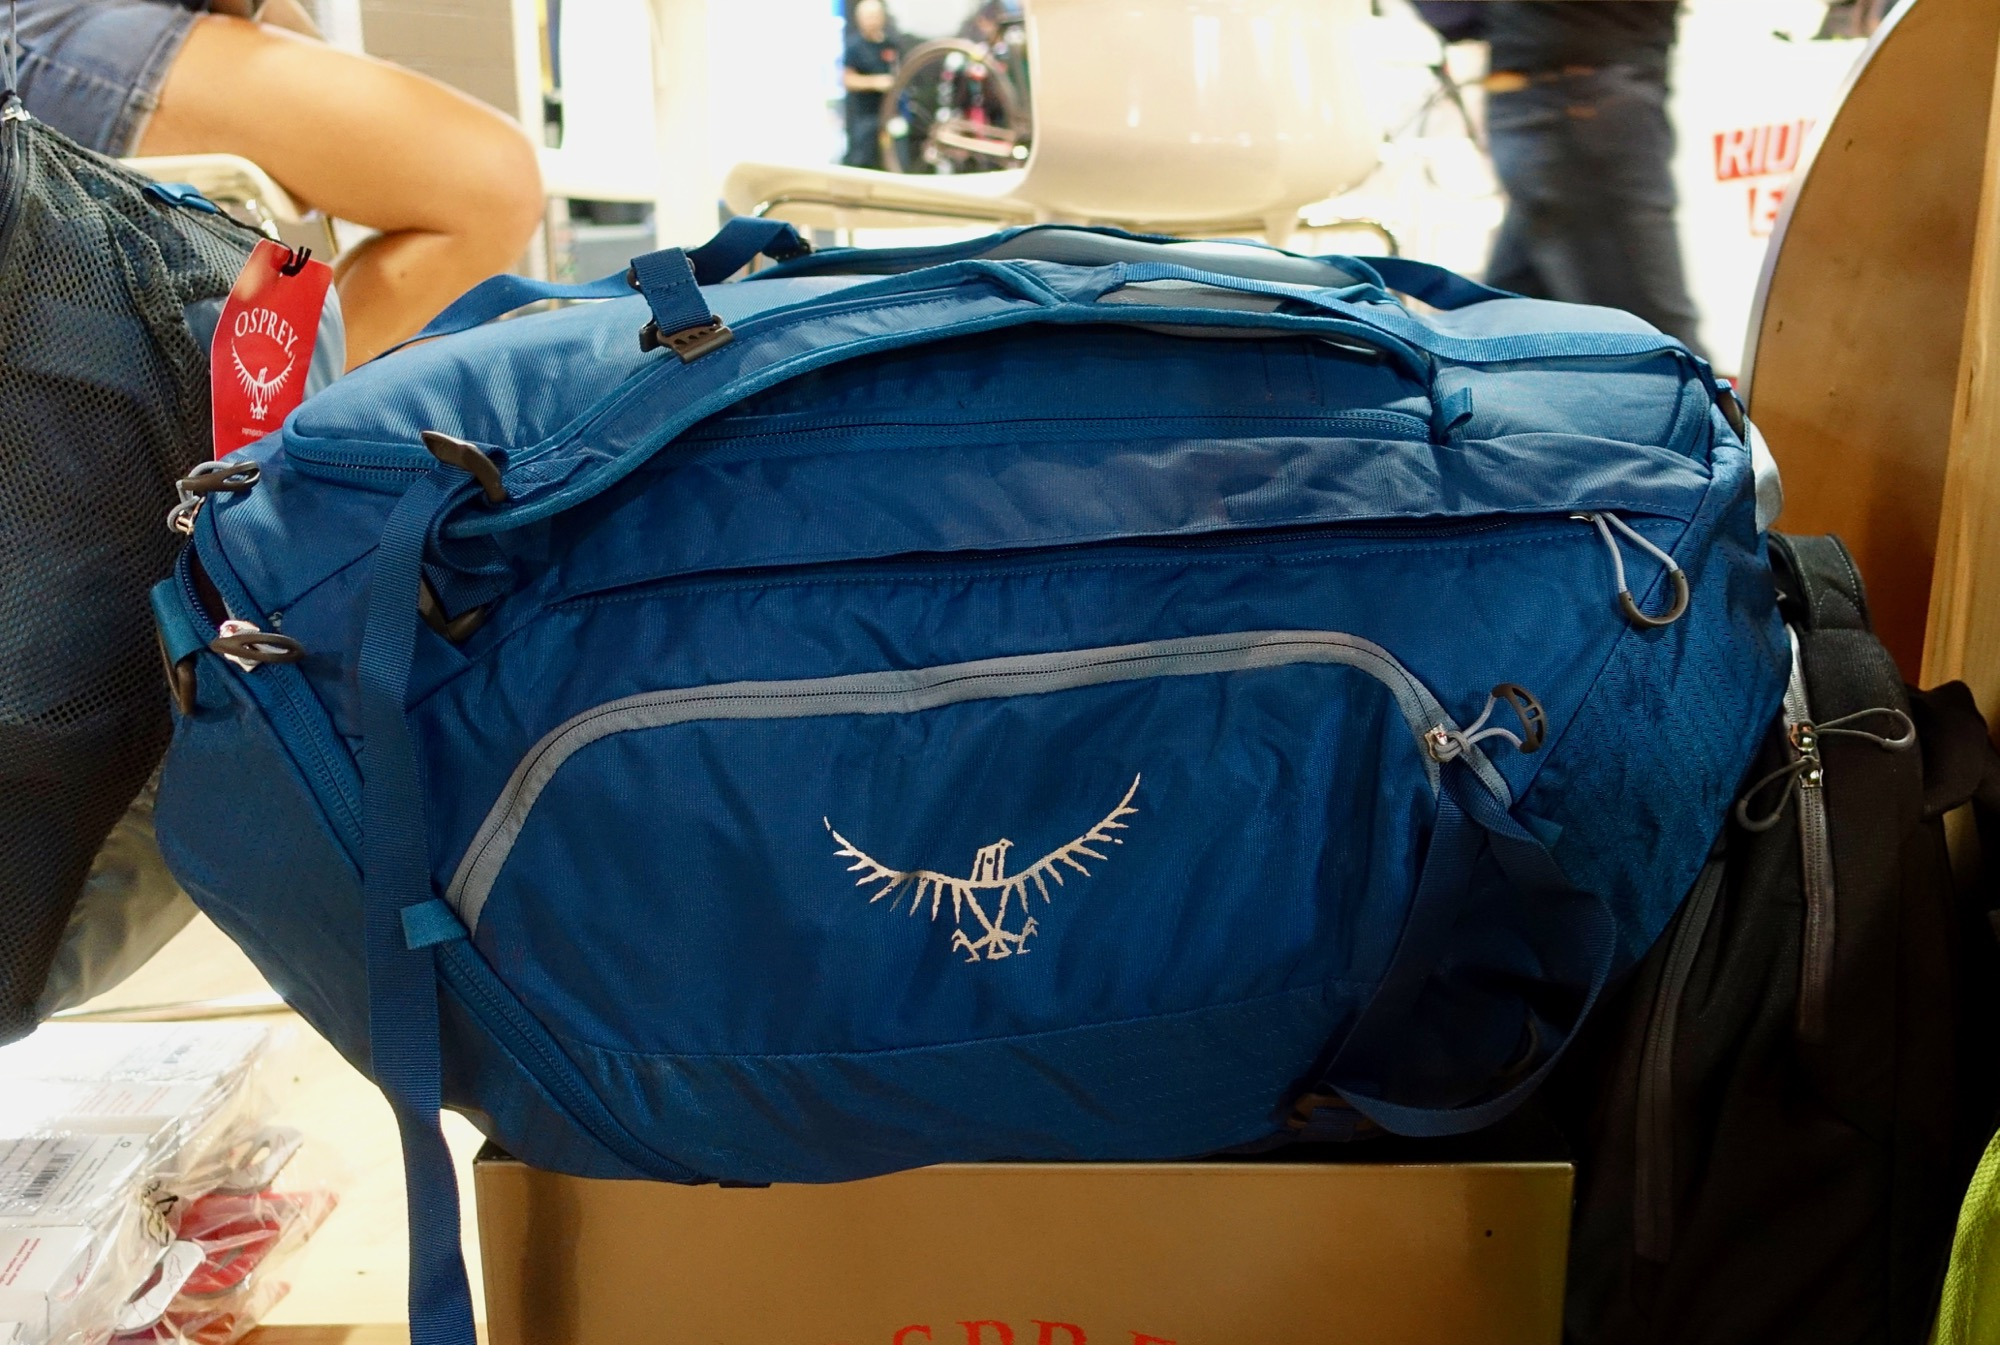 Osprey S New Gear Hauling Bags Are Superbly Engineered